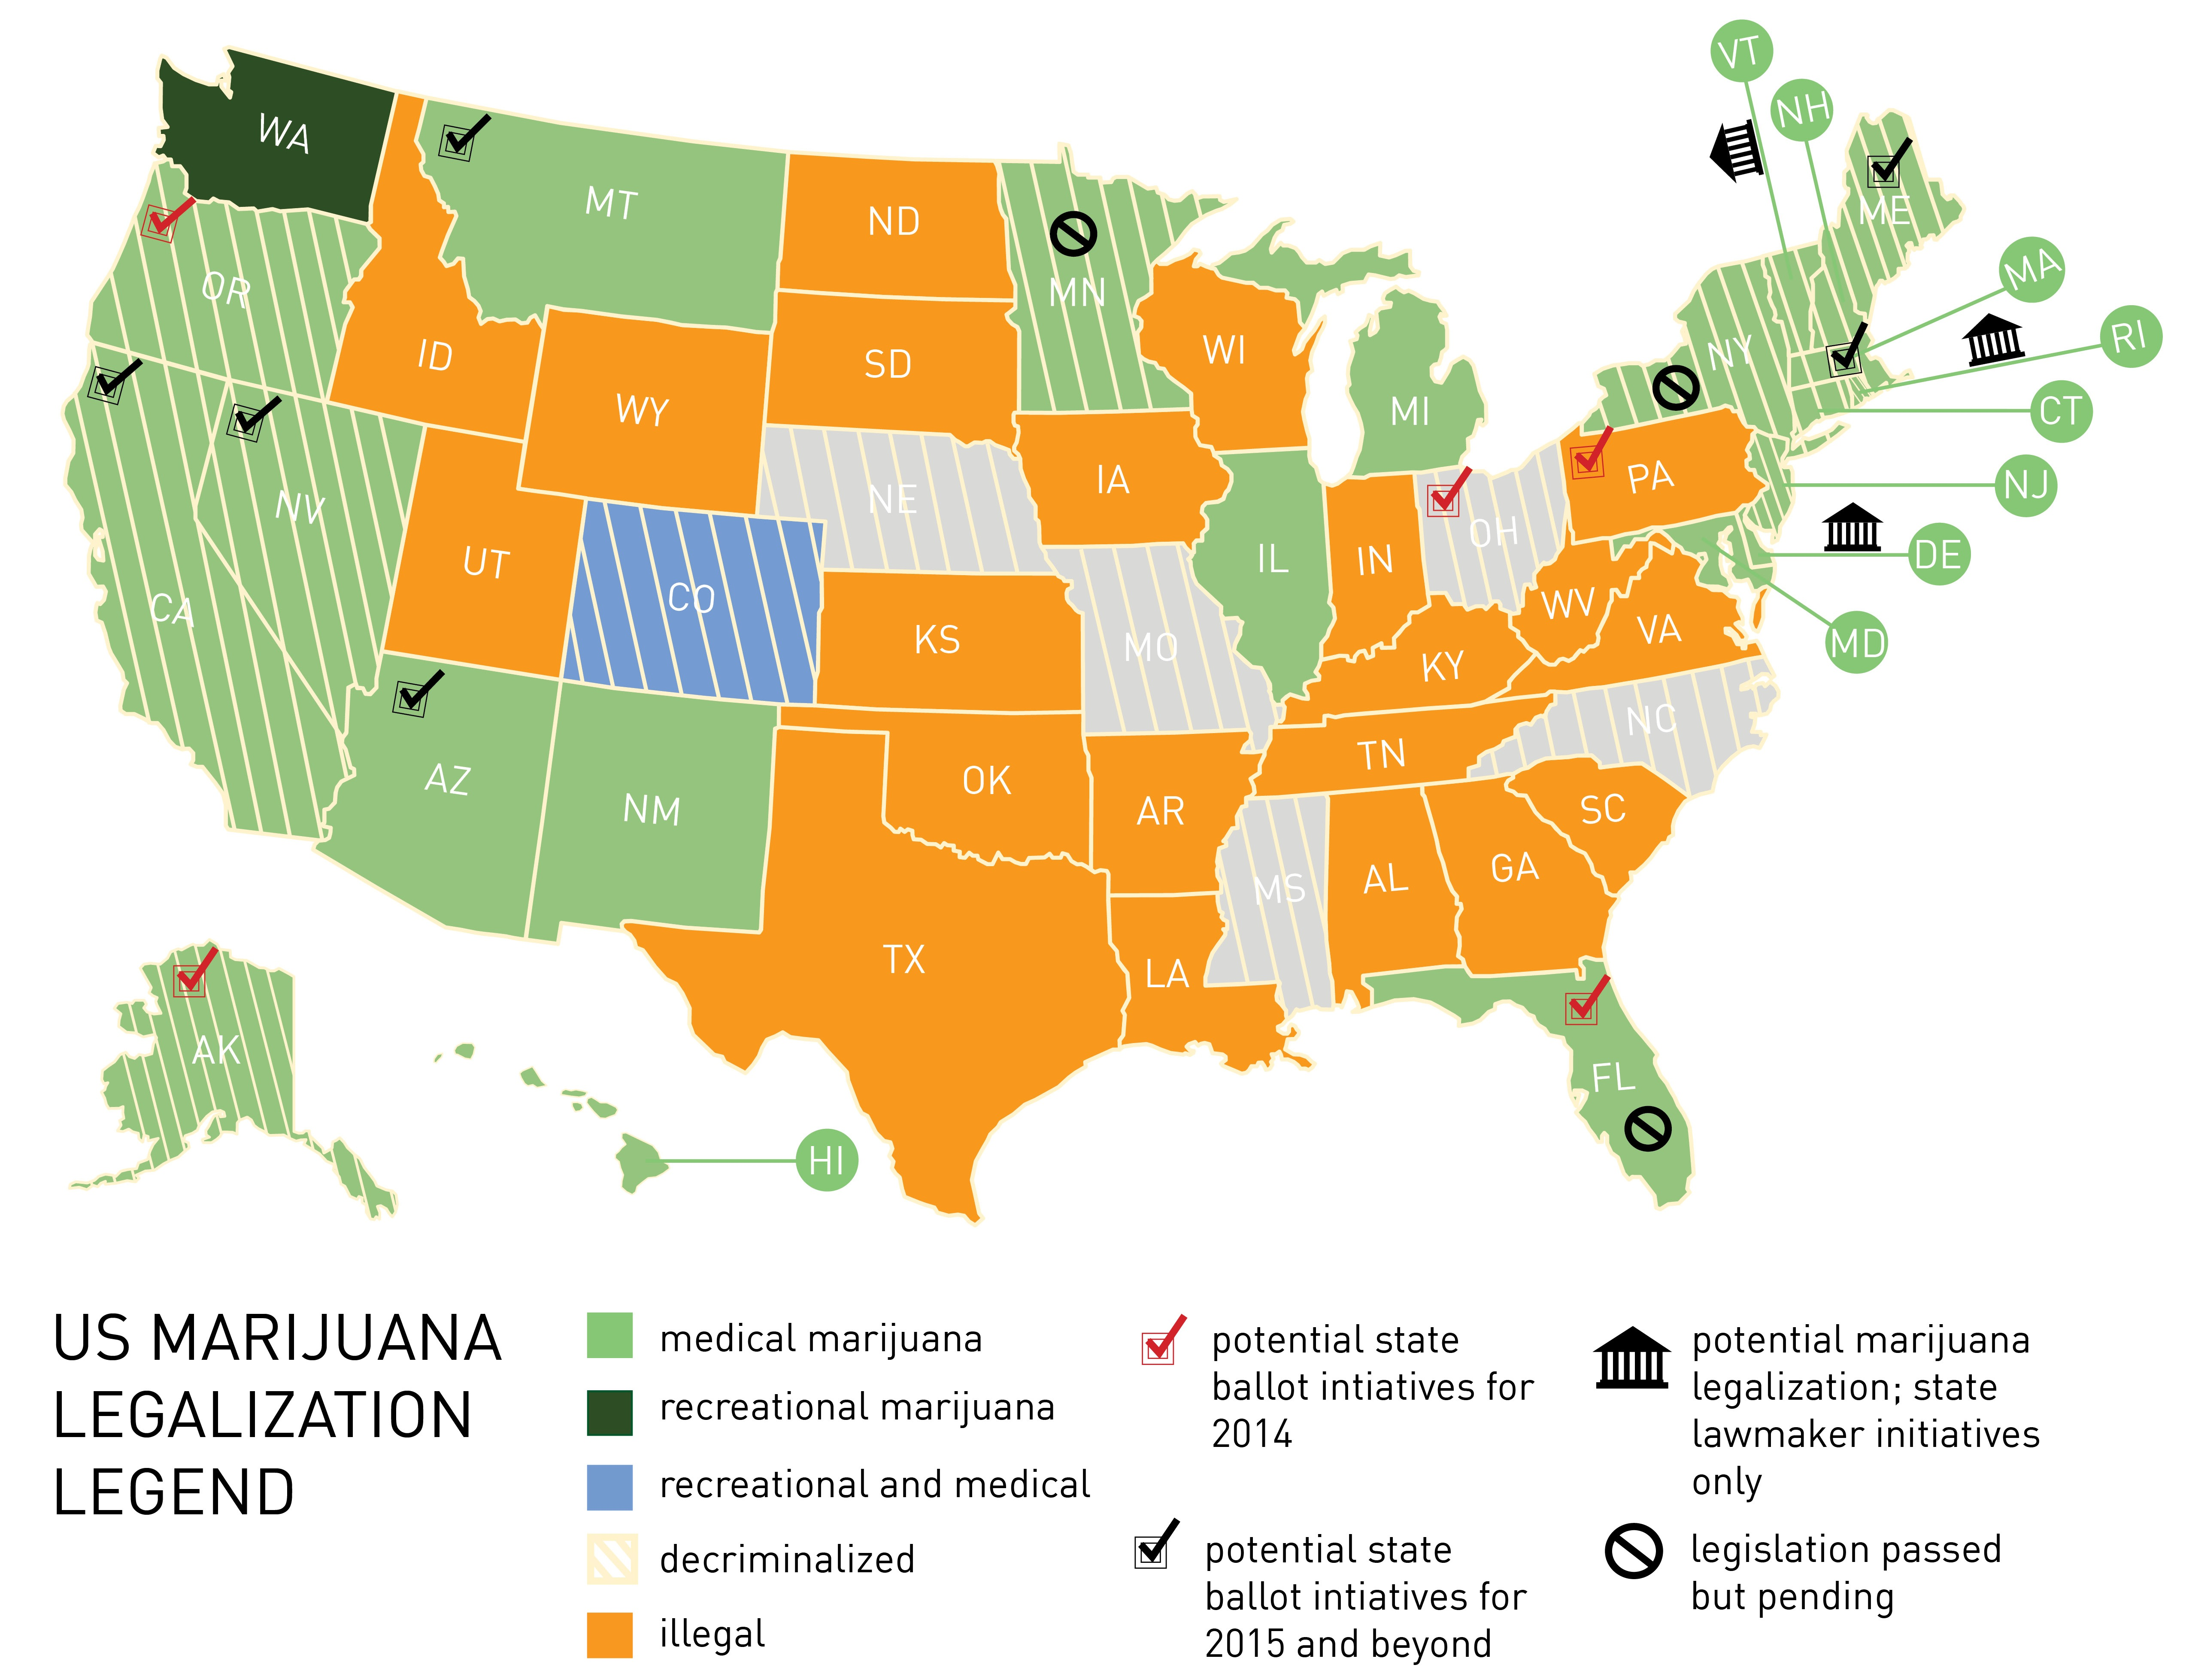 a brief introduction of the marijuana controversy in the united states Today, 29 states and washington, dc, have legalized medical marijuana, and 8 states plus dc have legalized it for recreational use it's illegality at the national level has created tension.